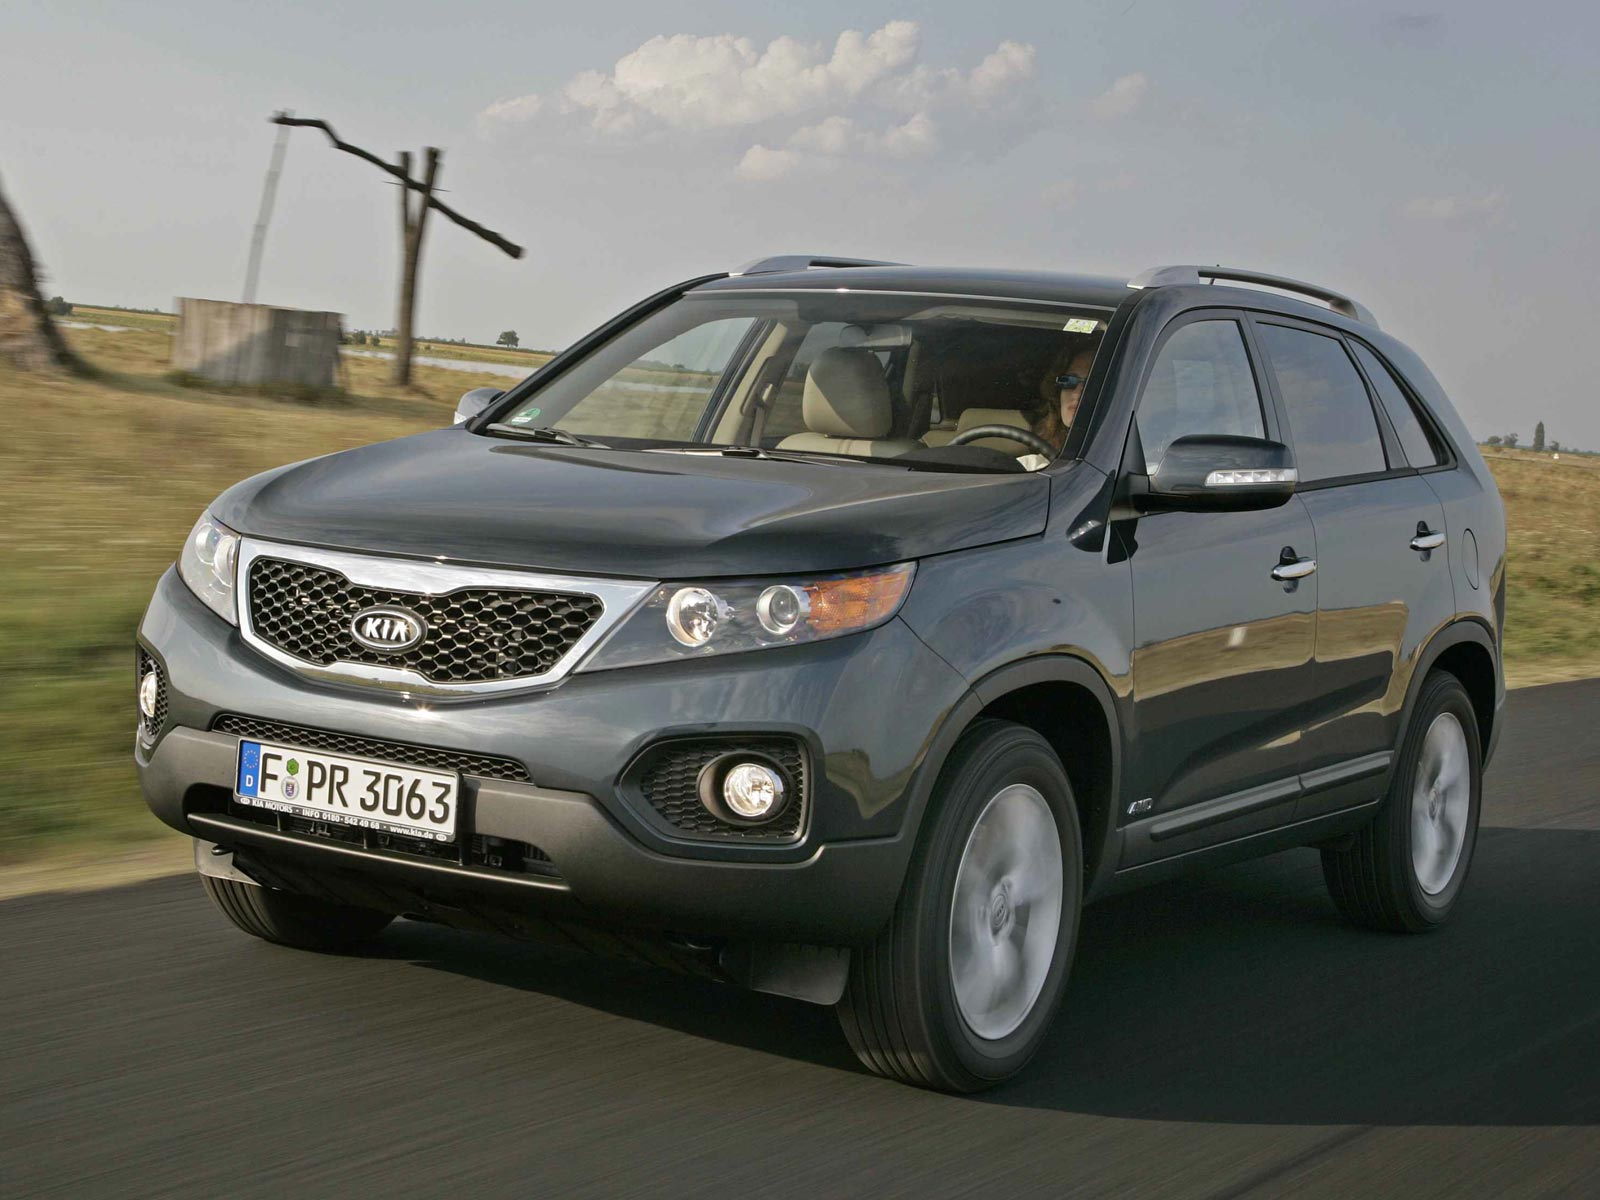 2009 kia sorento 3 3 4wd related infomation specifications. Black Bedroom Furniture Sets. Home Design Ideas